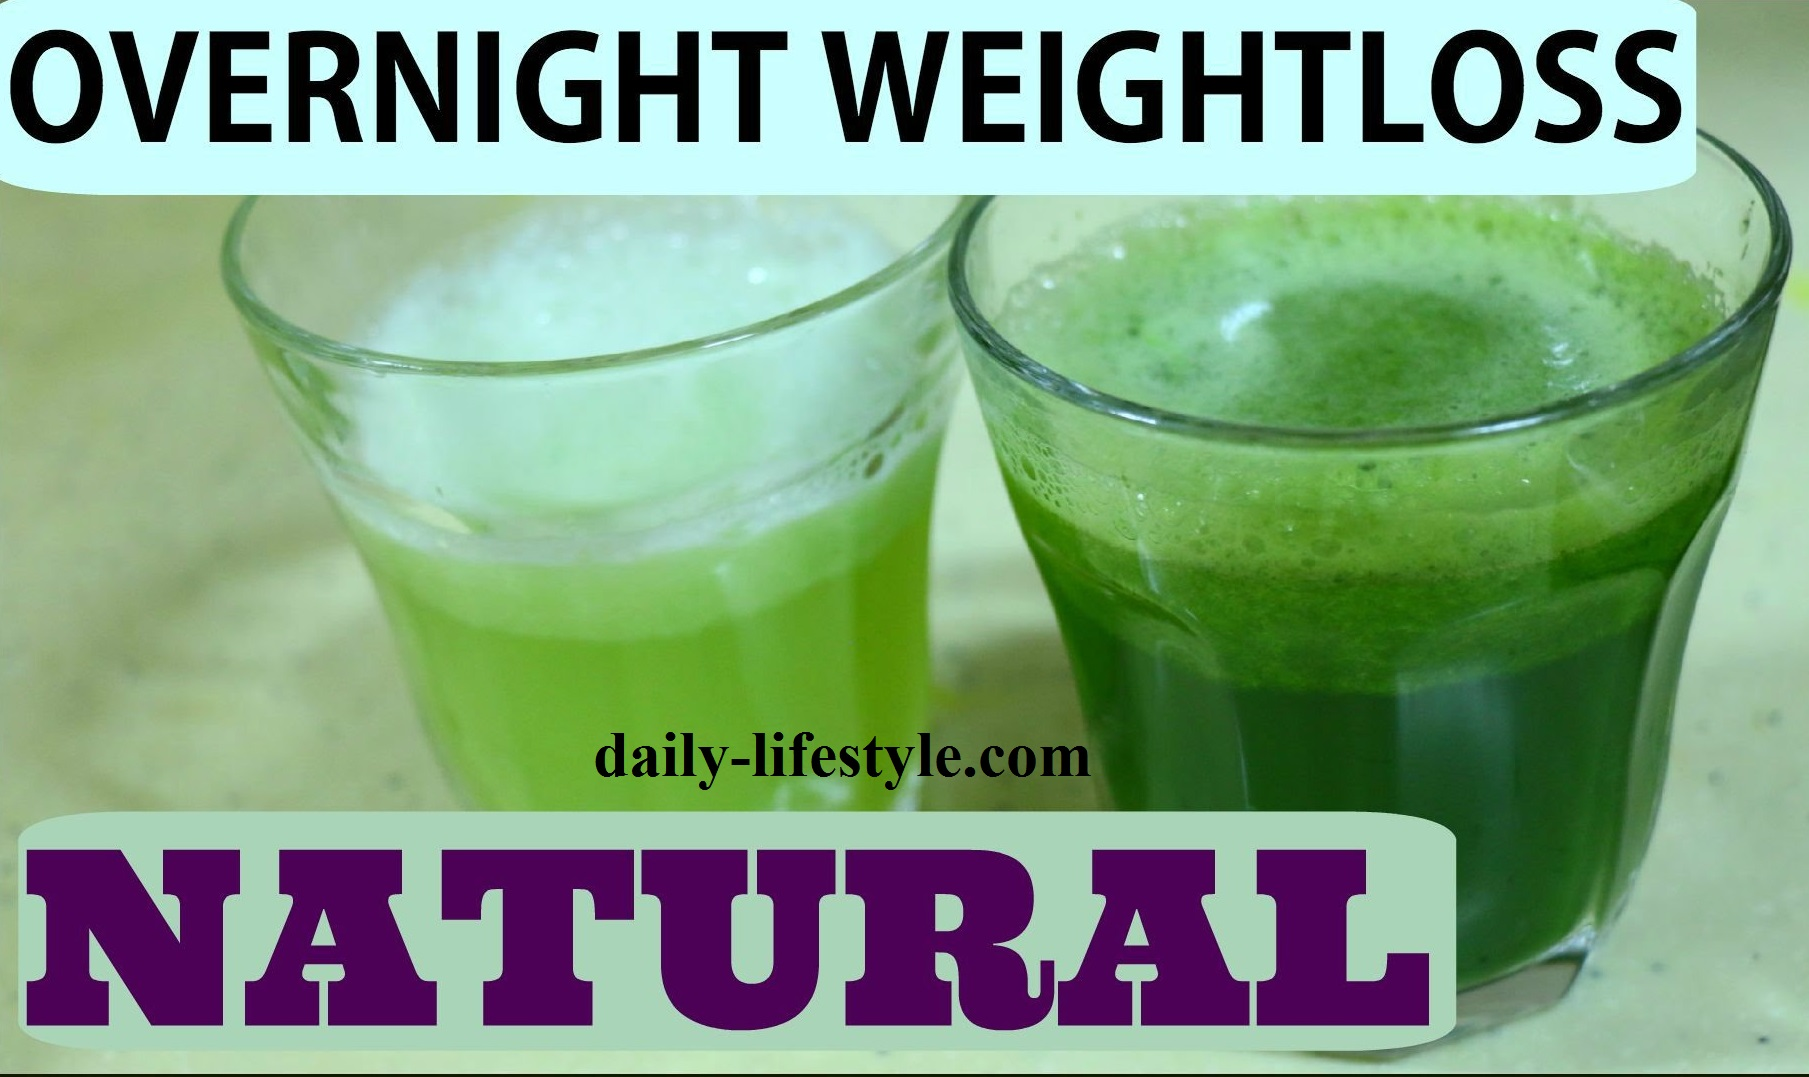 Rapid weight loss diet protein shake photo 2